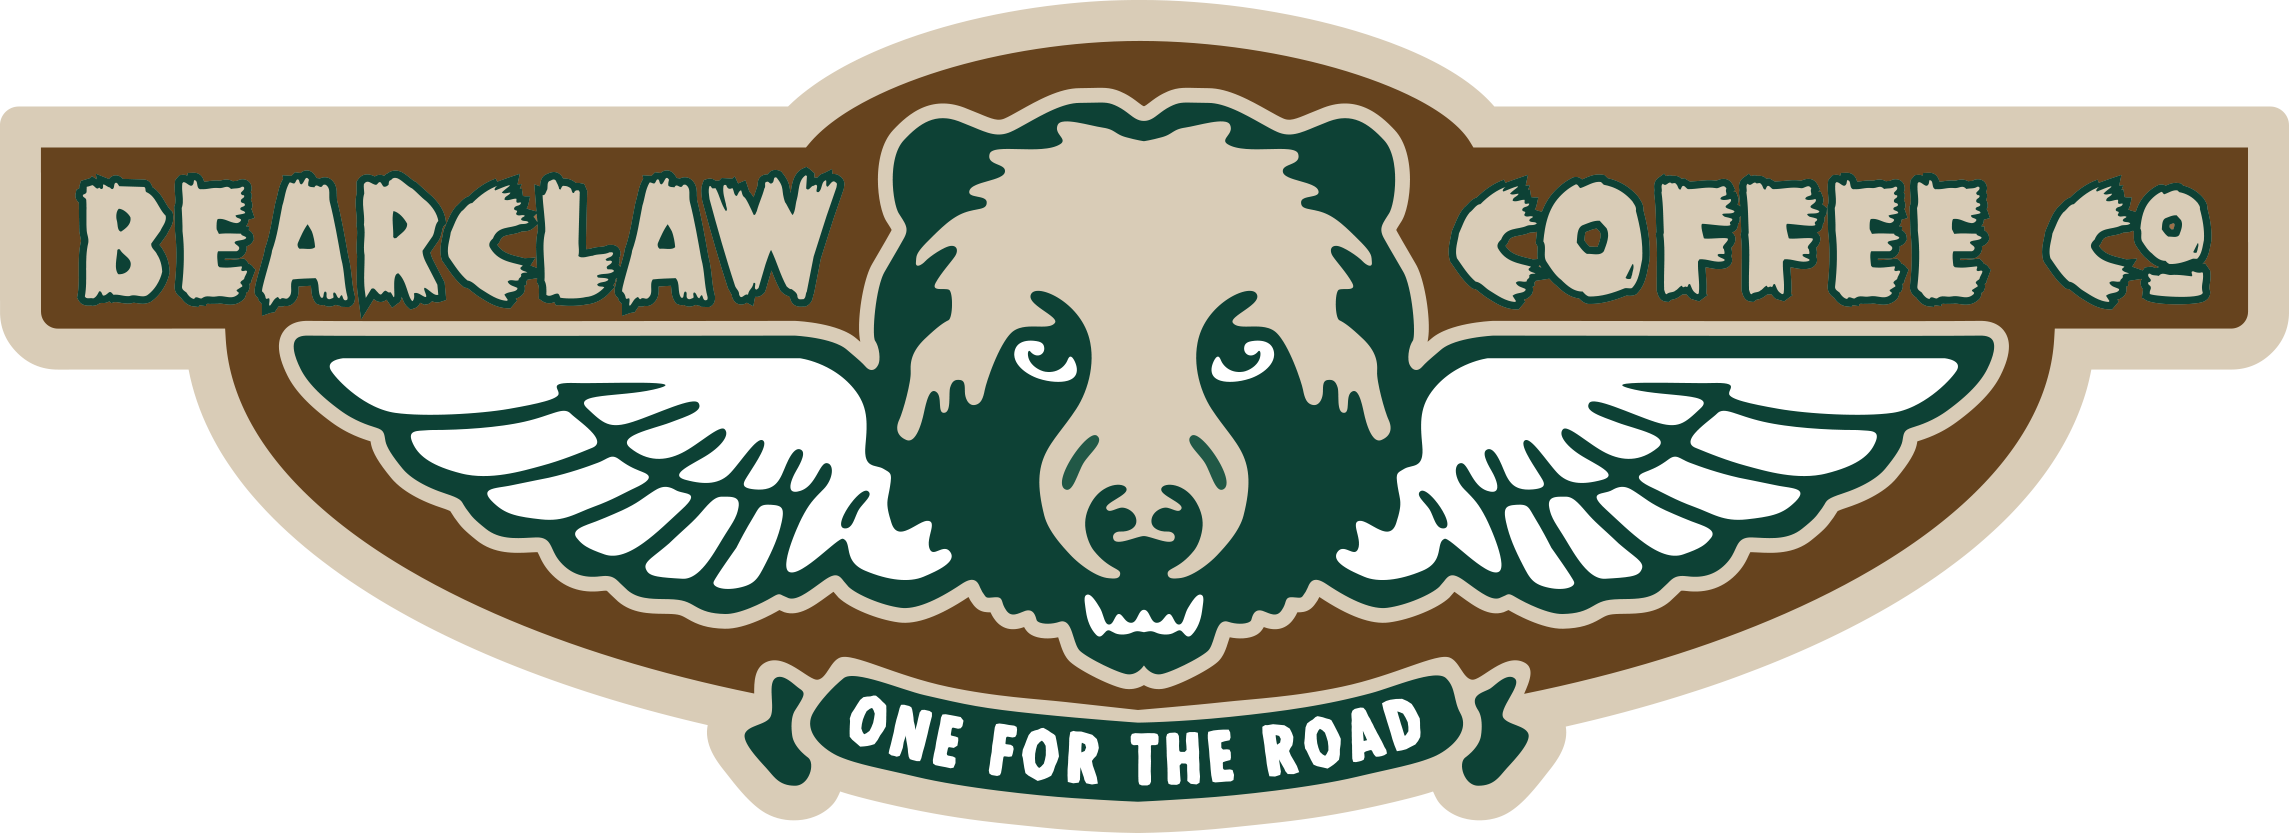 BEARCLAW_LOGO High Resolution.png